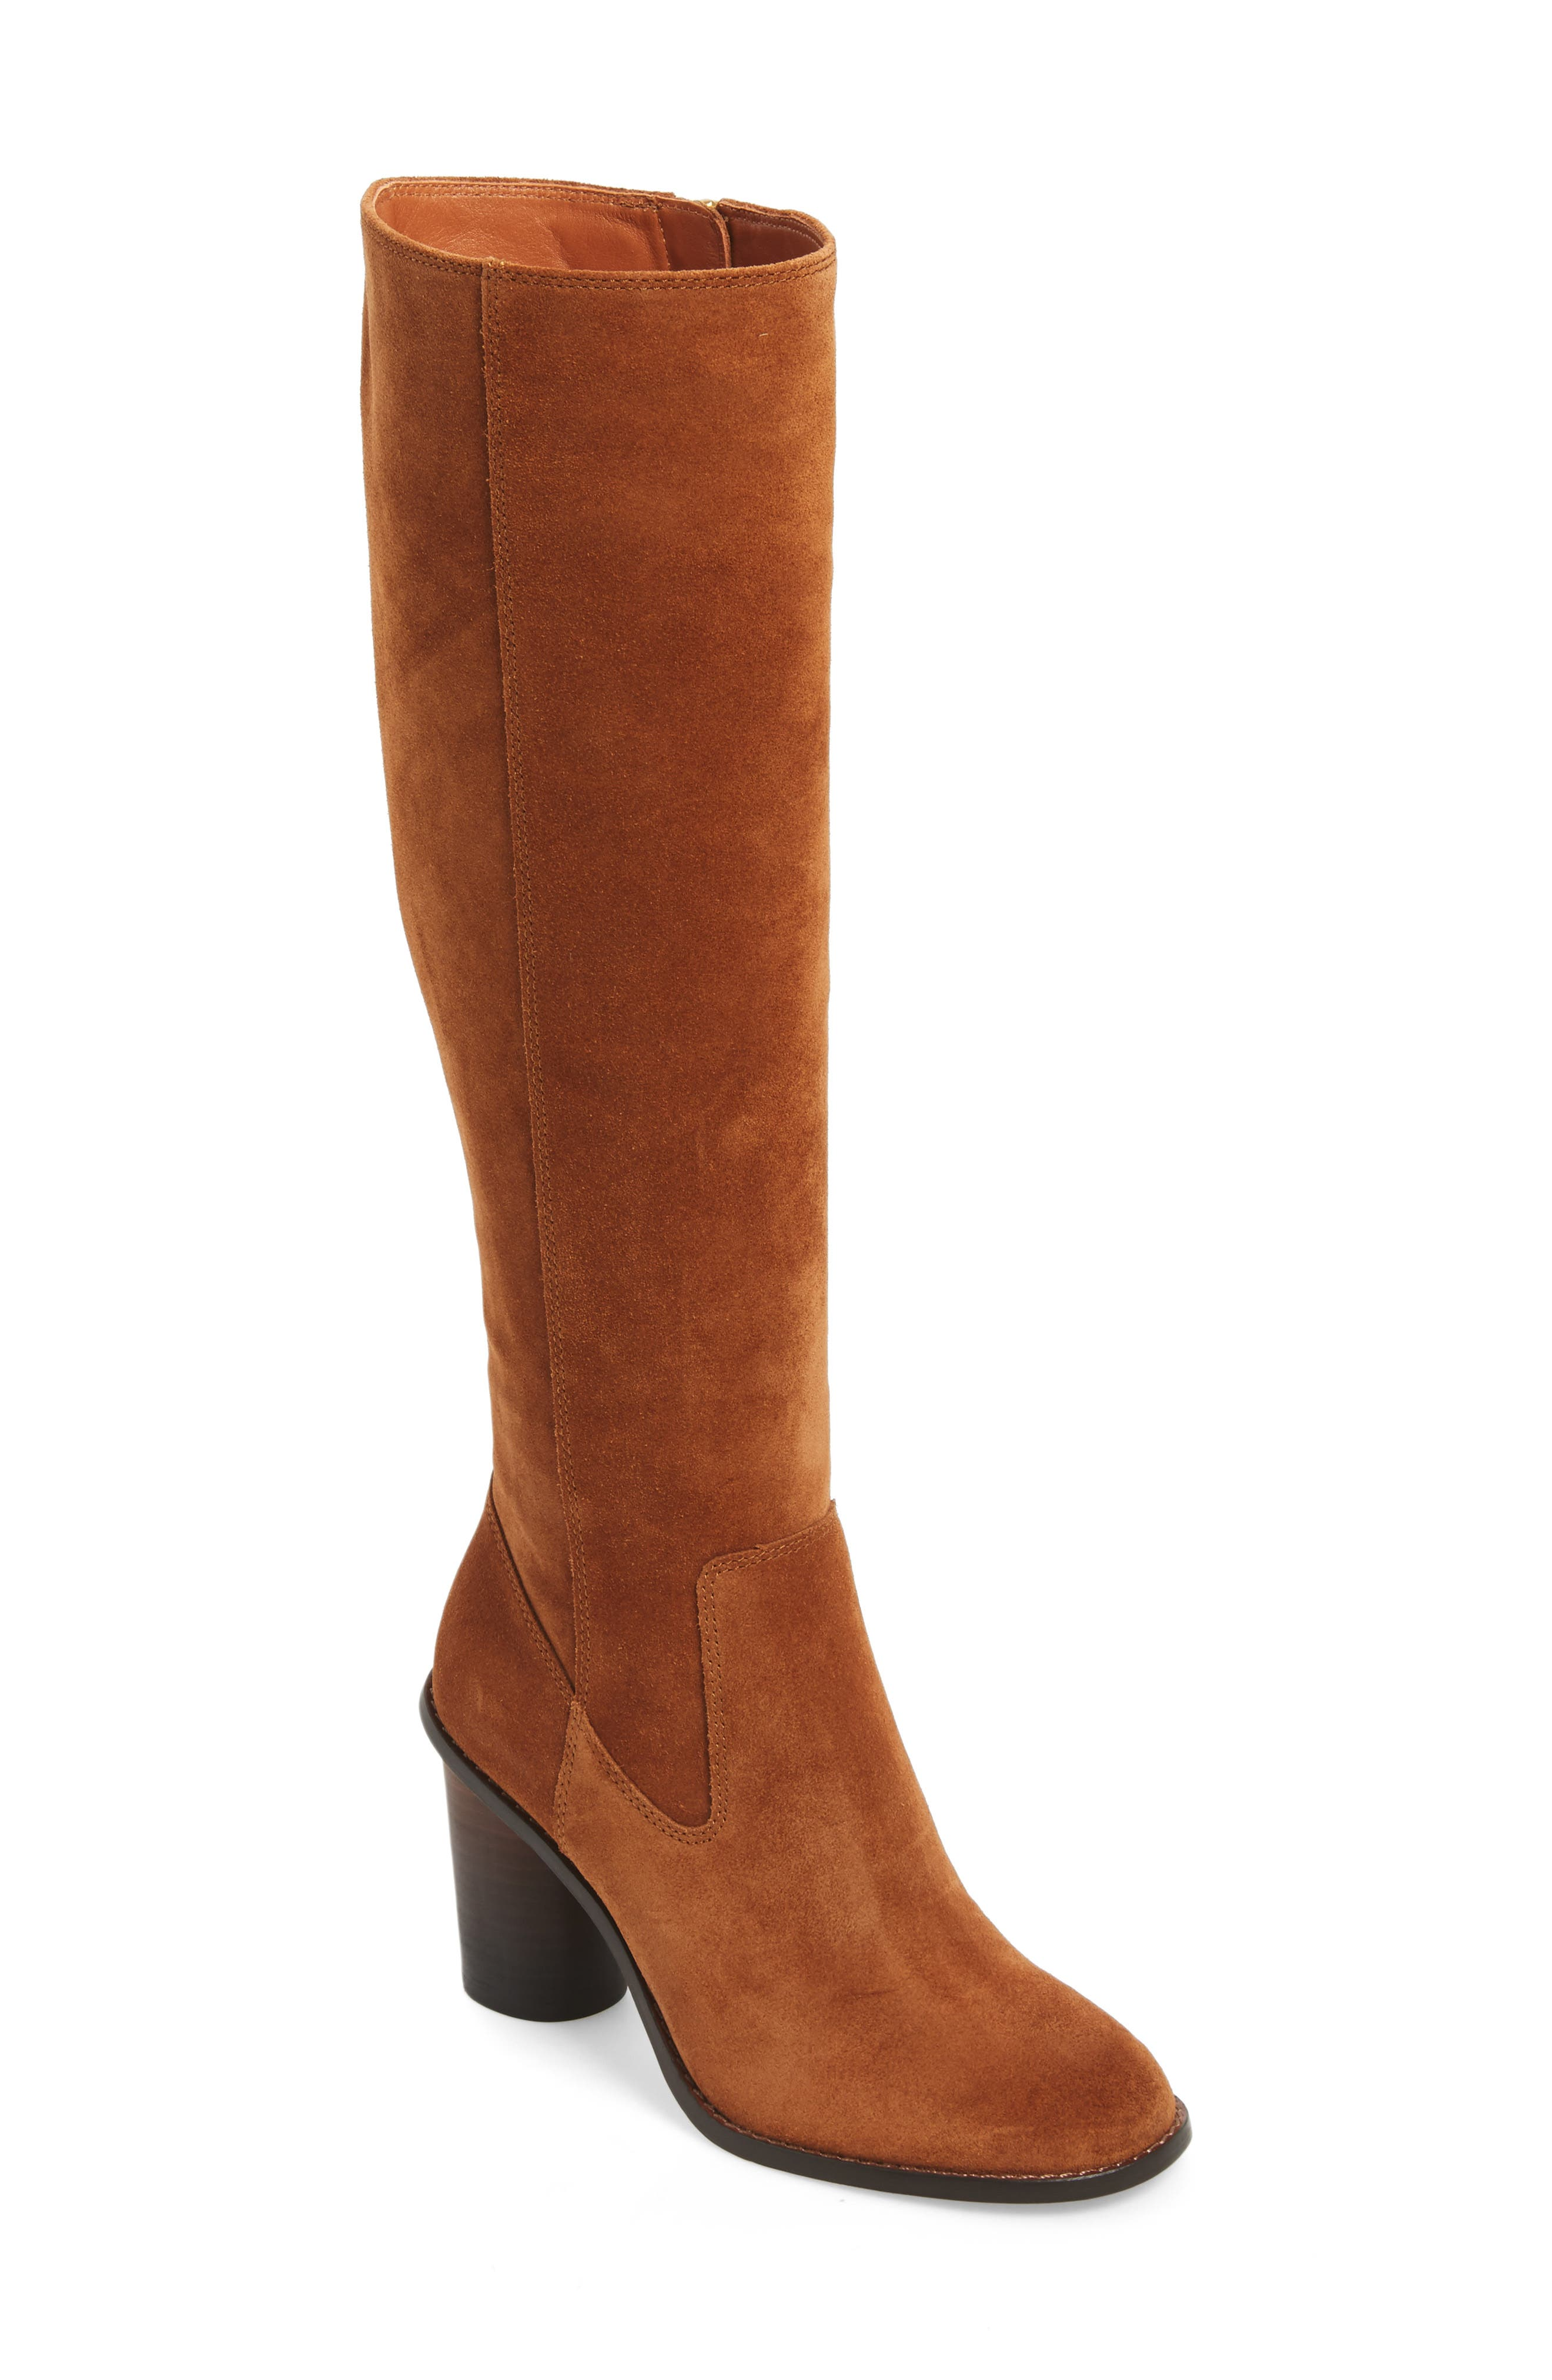 COACH Ombré Knee High Boot (Women)